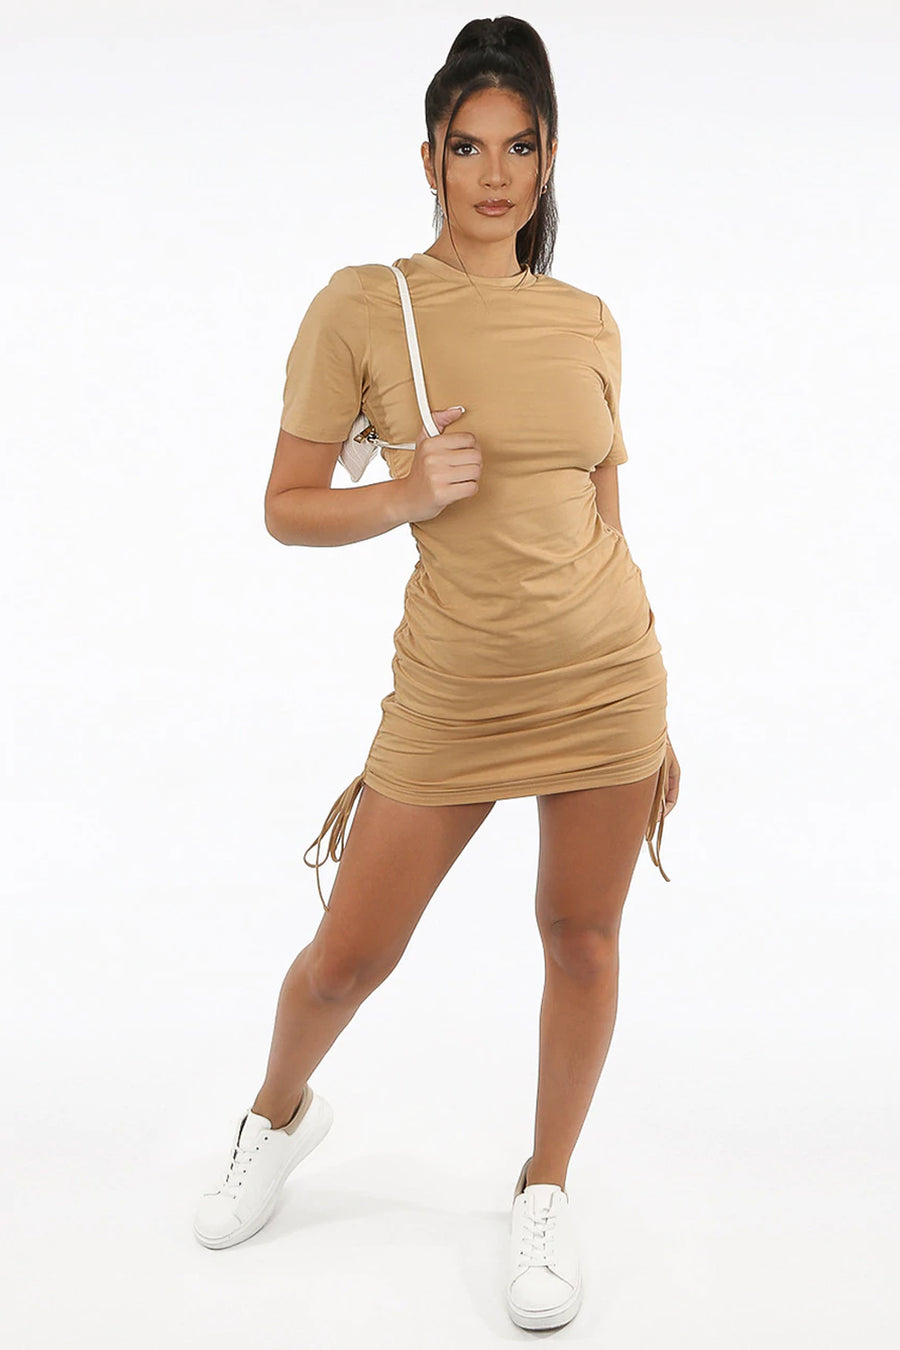 Beige Short Sleeves Slinky Mini Dress - Harley